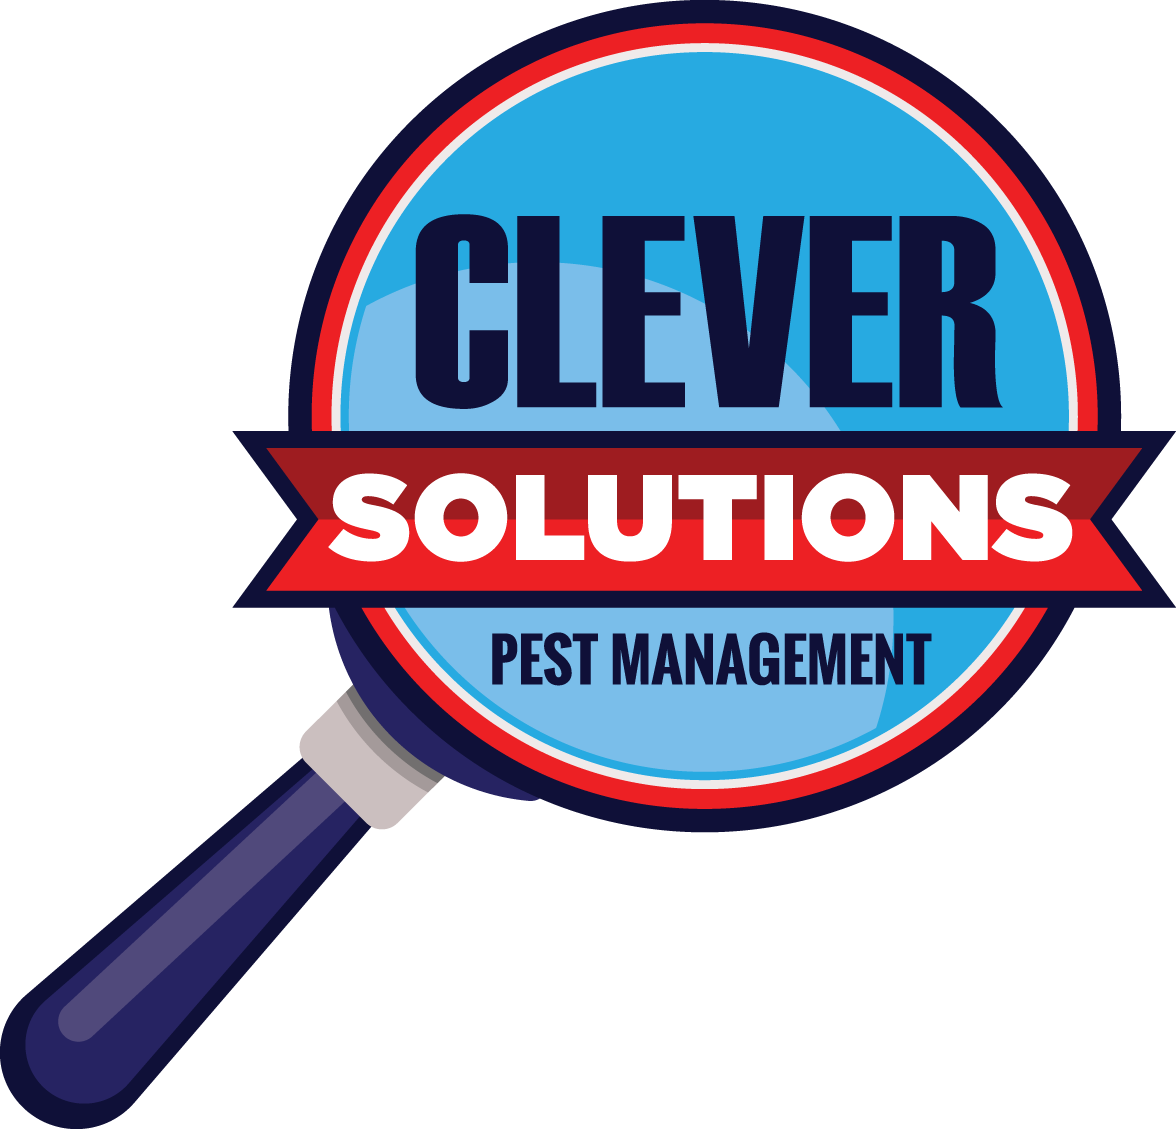 Clever Solutions Pest Management